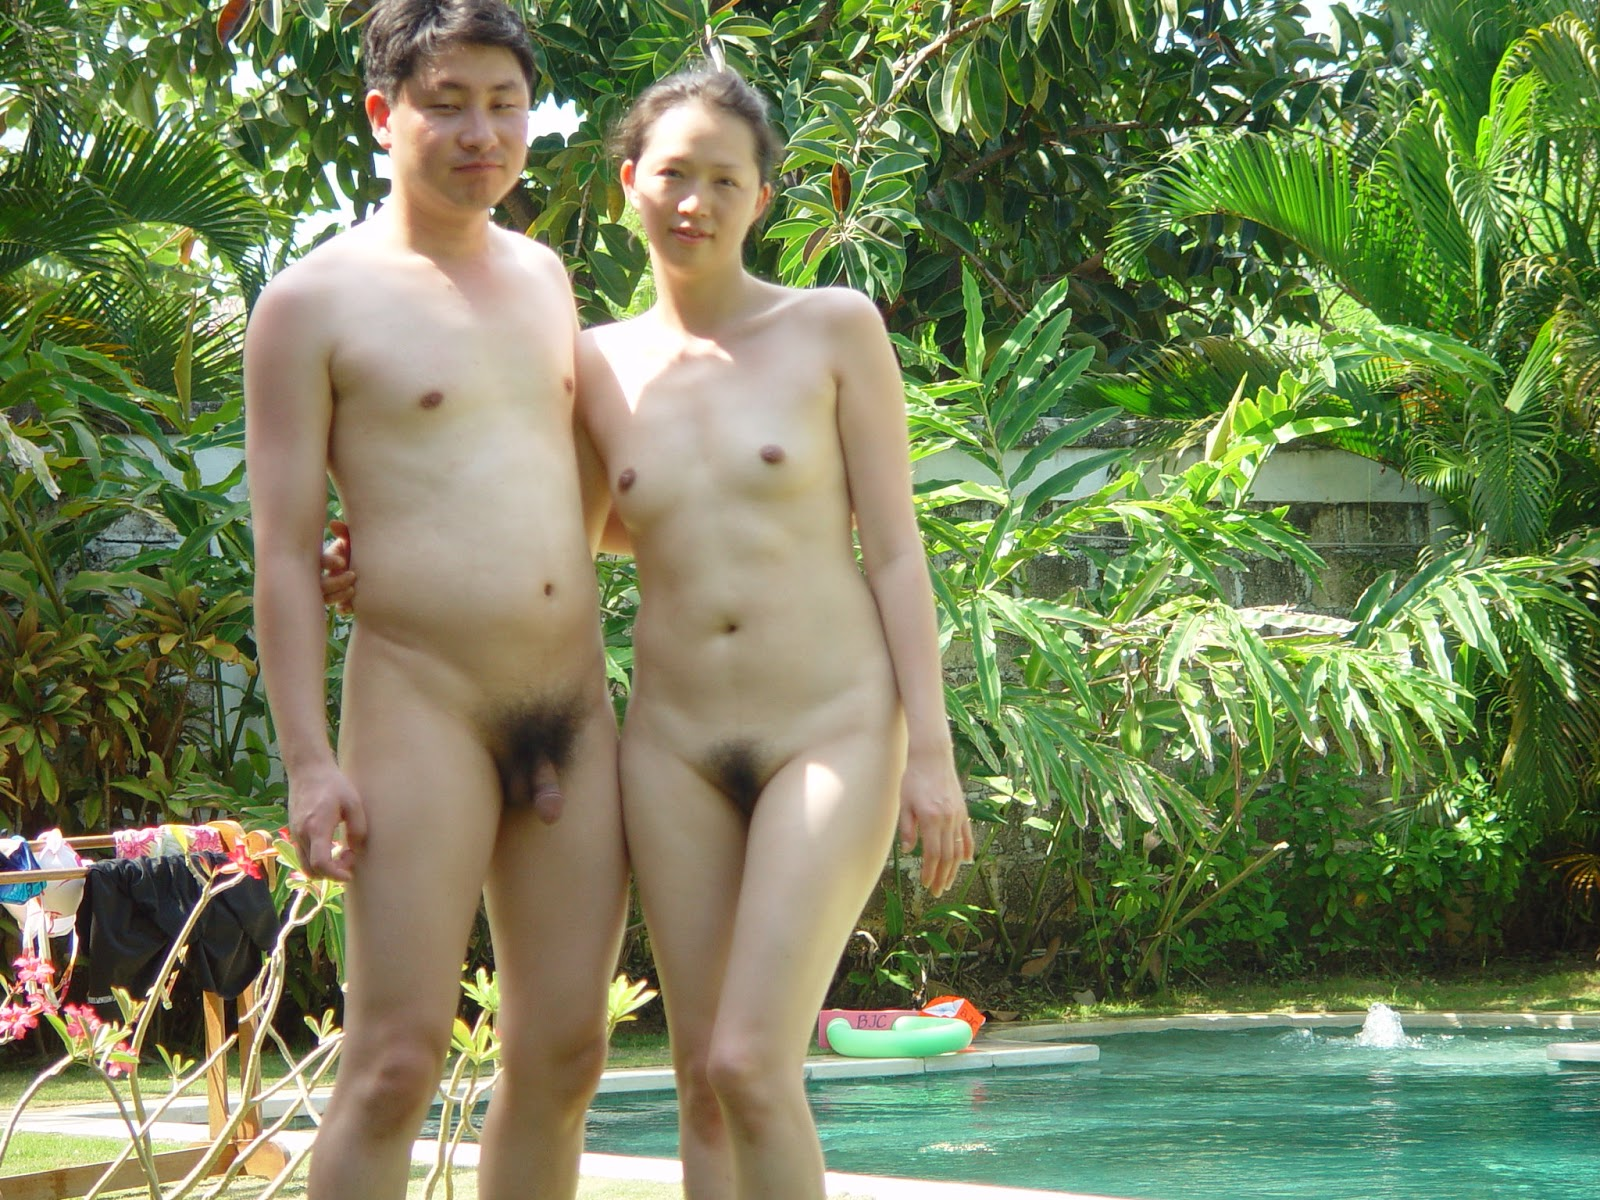 Honeymoons pregnant naked photos simply excellent